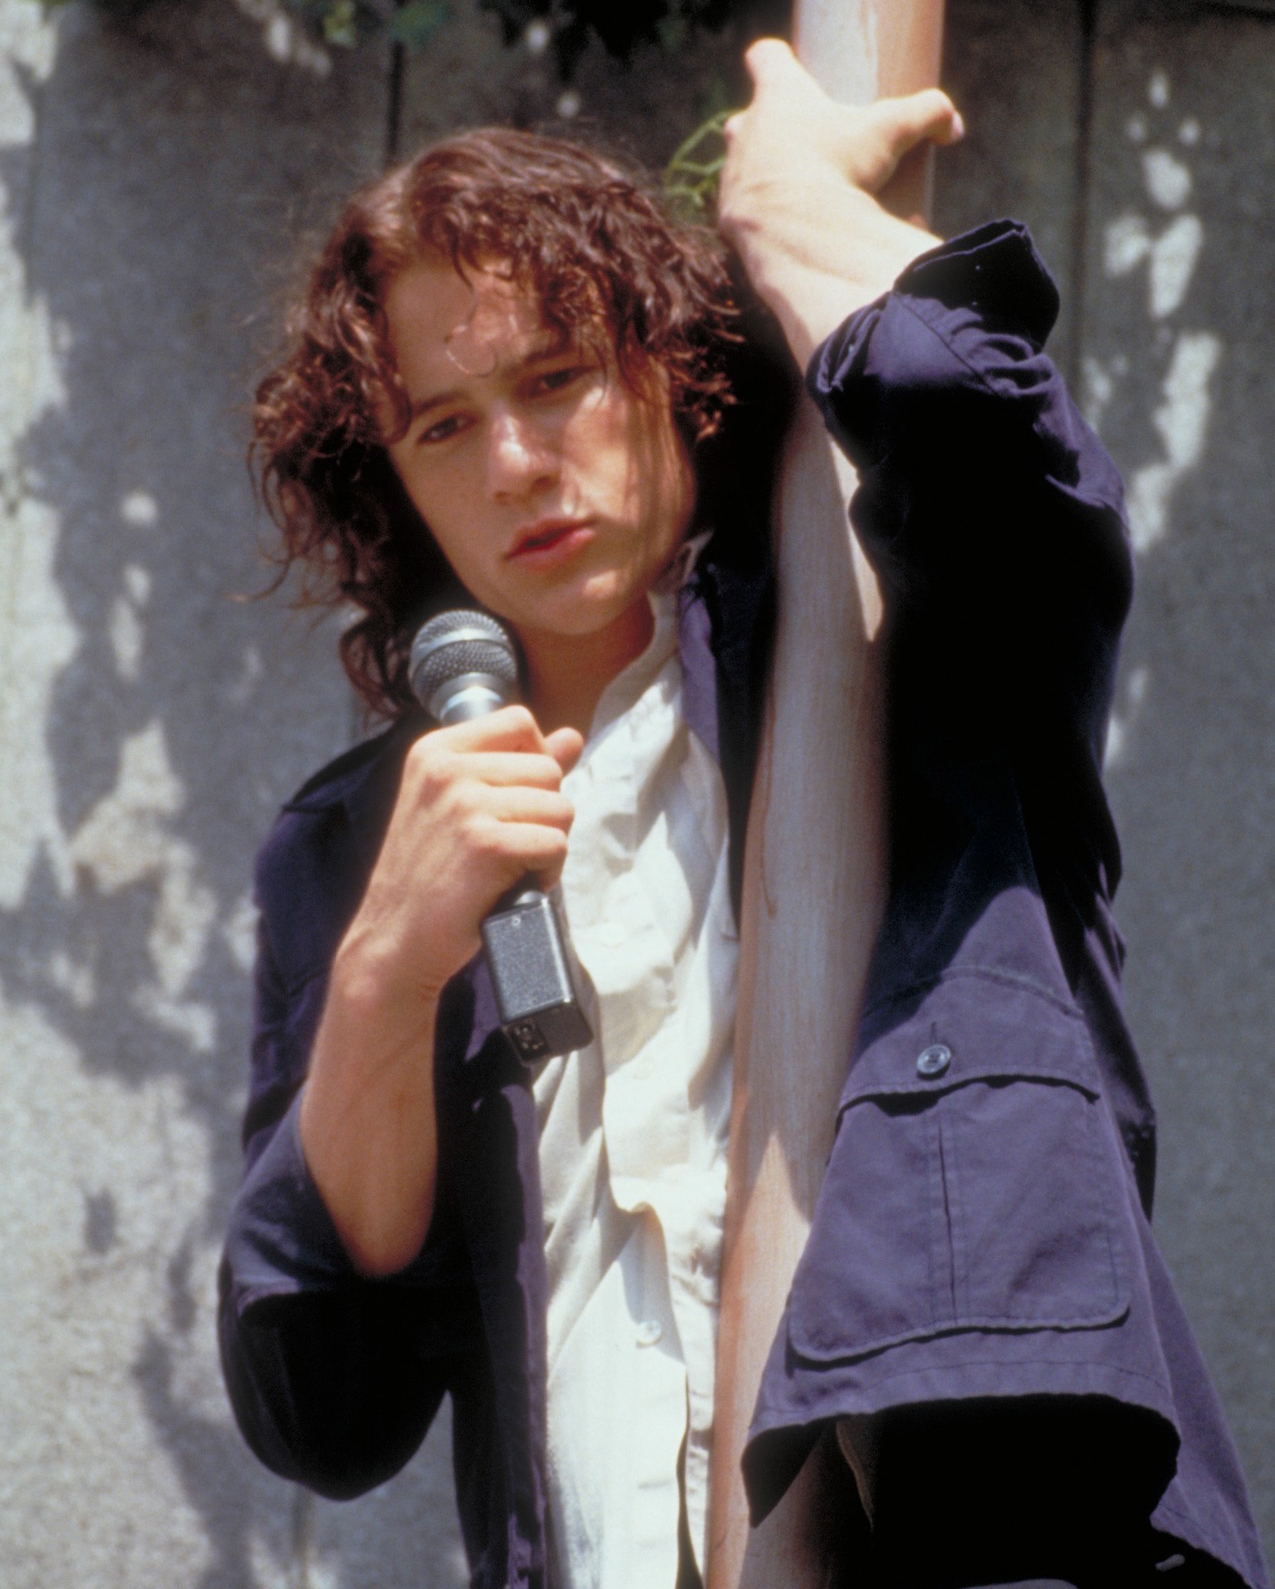 idesign 10 things i hate about you 16